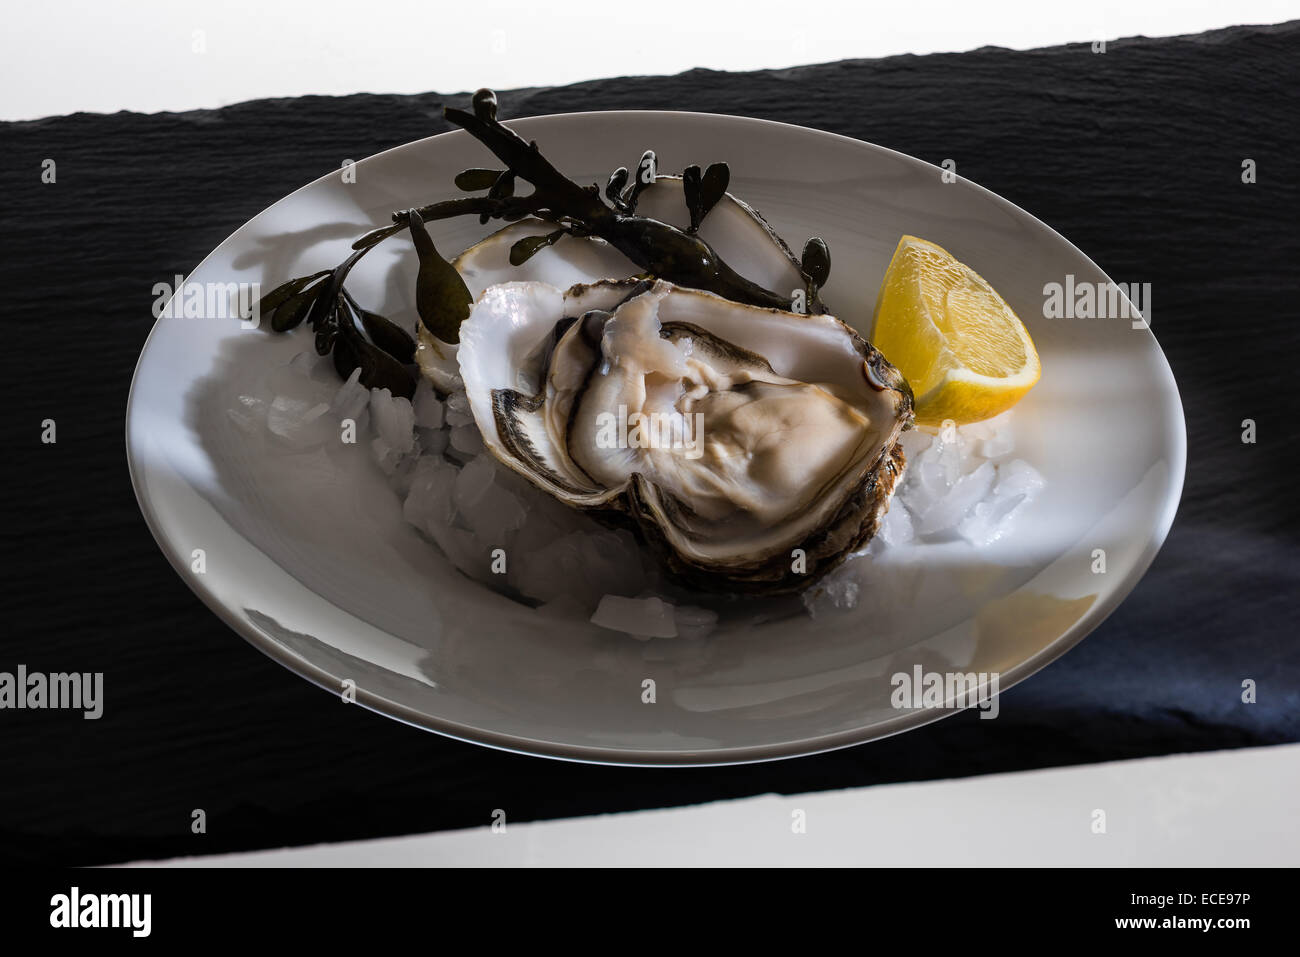 Shell, delicacy, expensive, precious, fine, studio, black background, magical light innards, shell, clam shell, - Stock Image